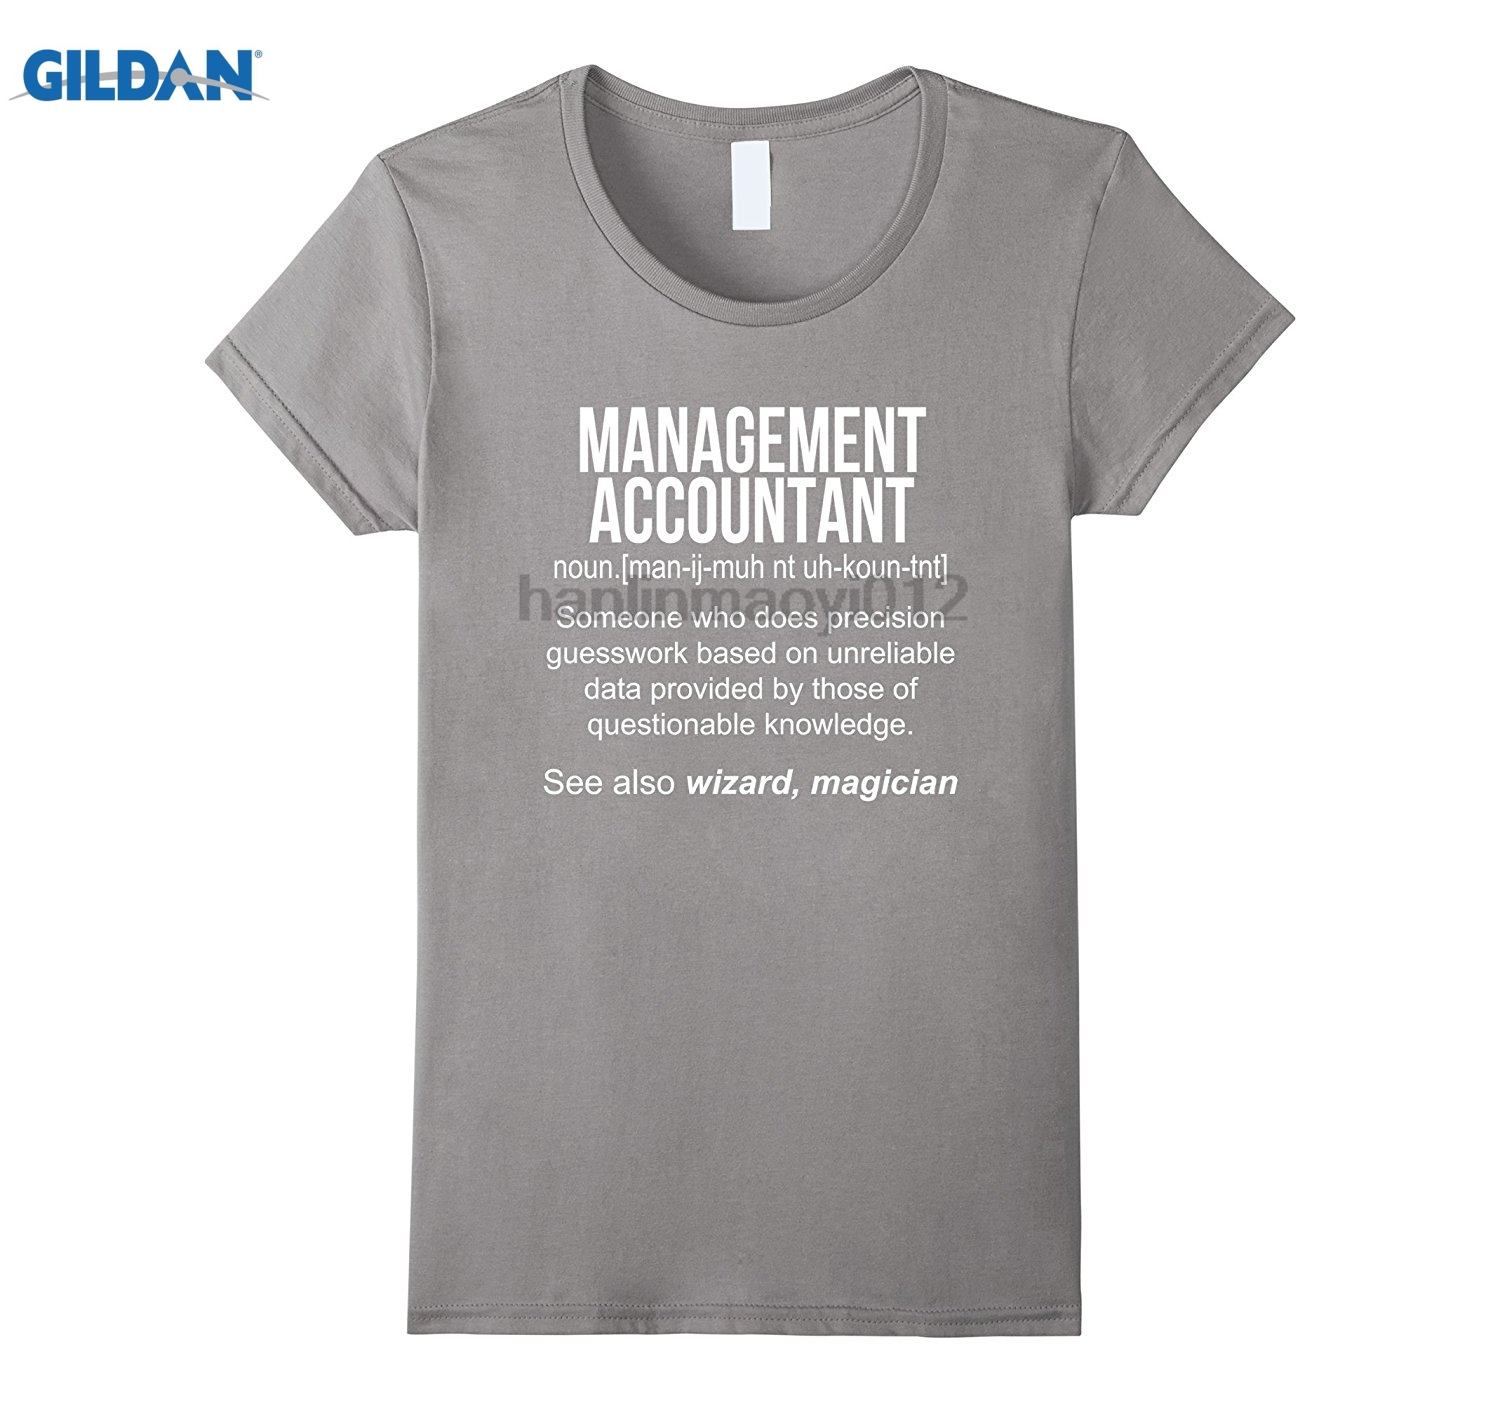 GILDAN Funny Management Accountant Meaning Noun Definition Shirt Trend new trend Hot Wom ...